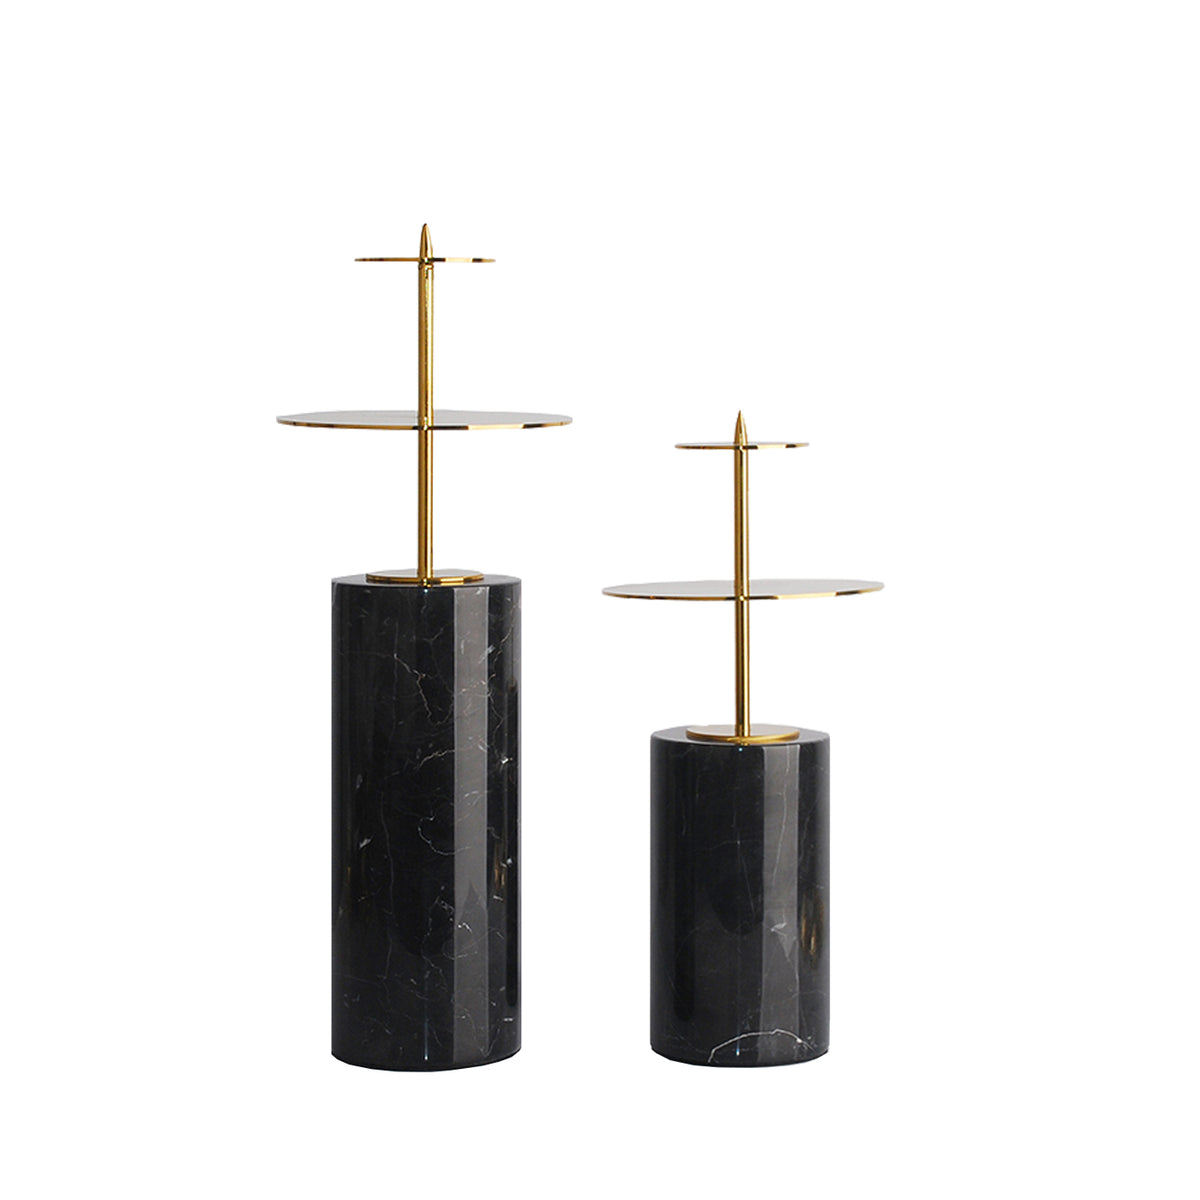 Candle Holder Stick - objects of interest